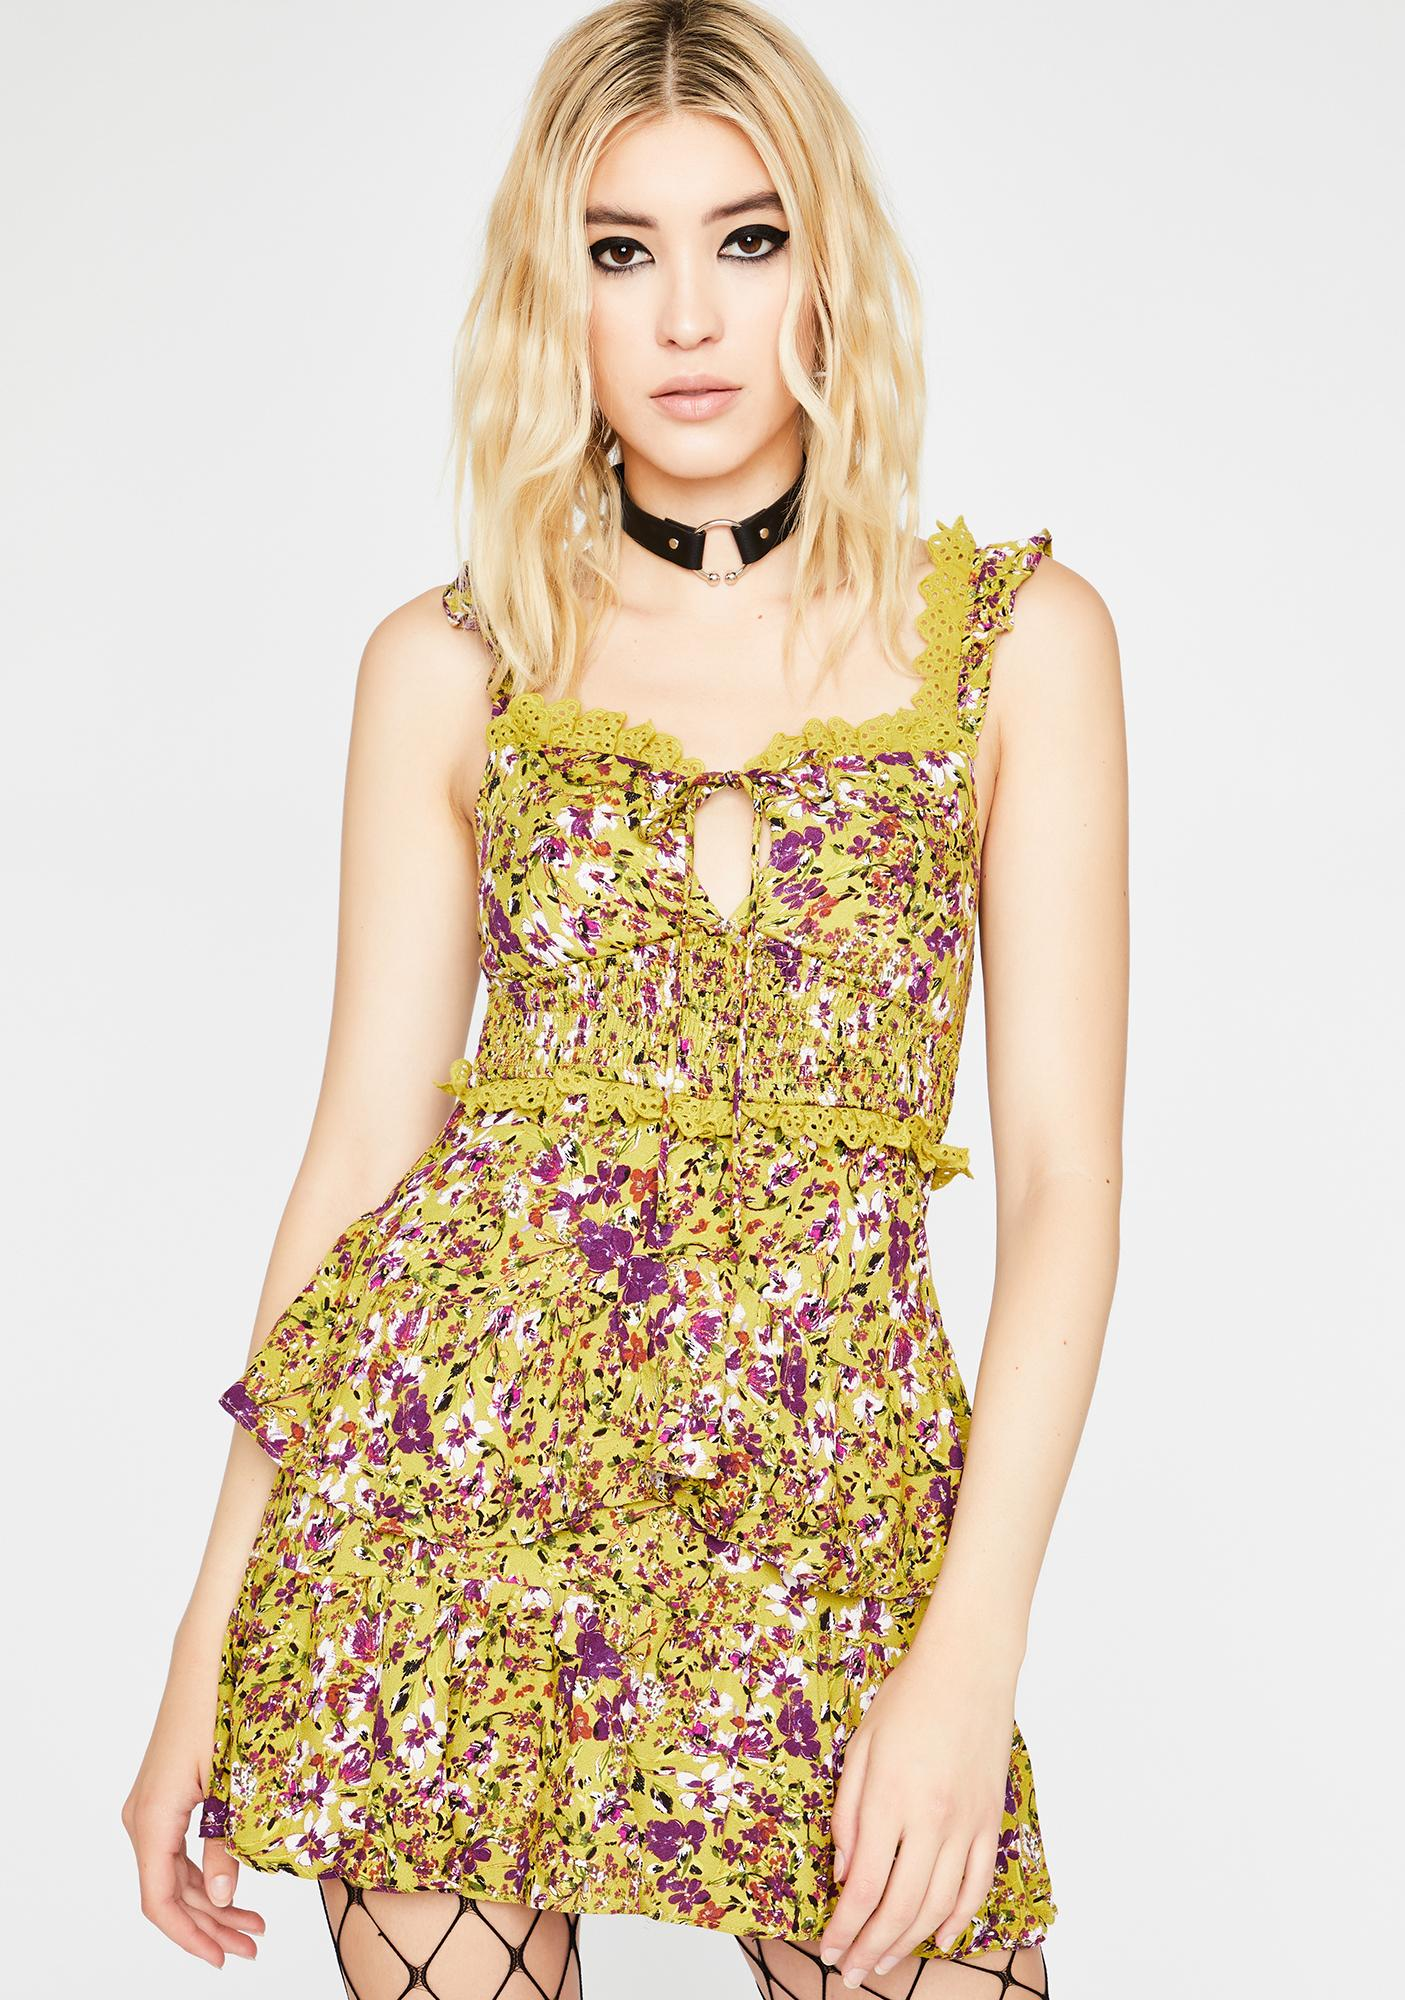 Kush Flirt Fiend Ruffle Dress